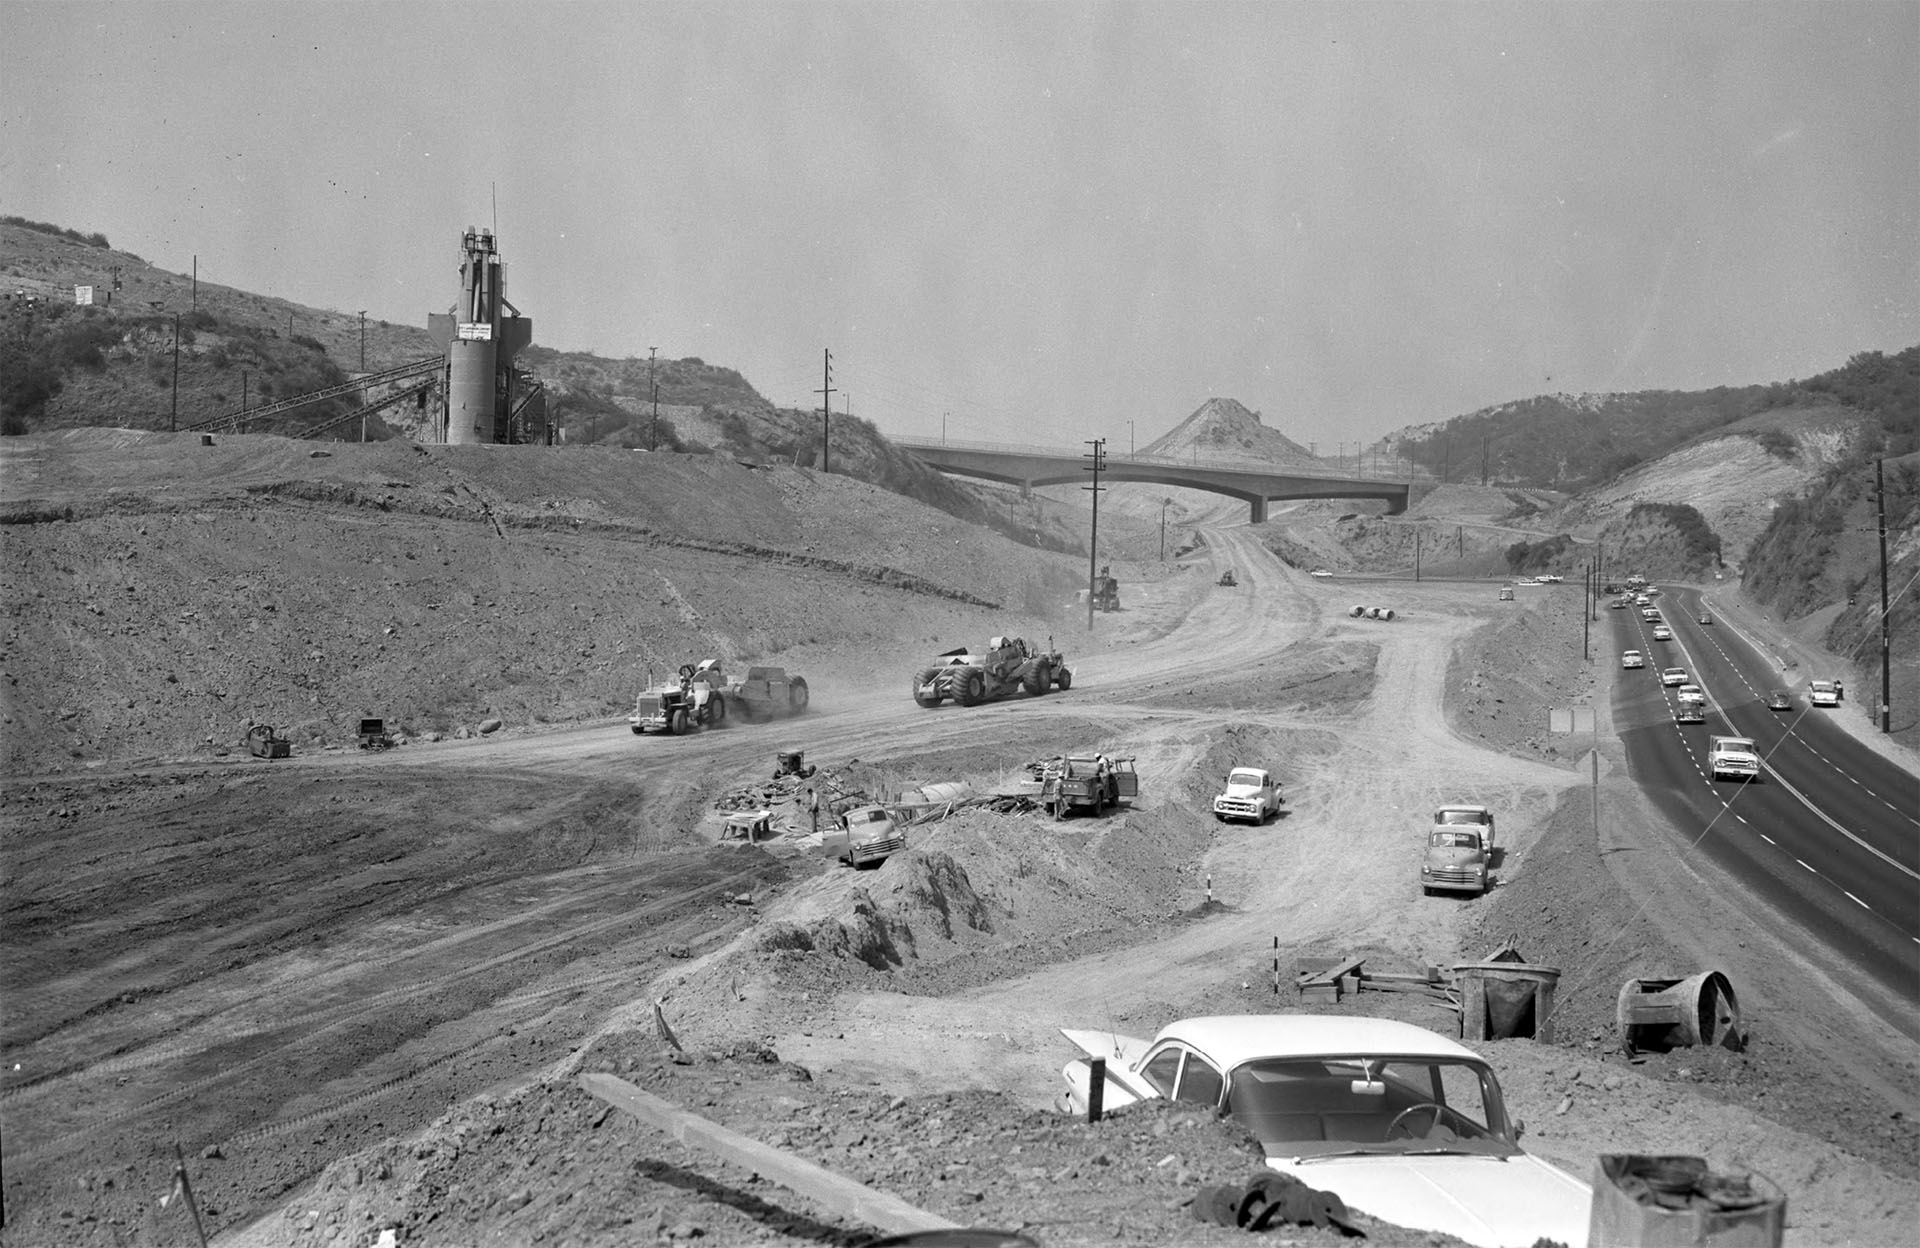 Grading work on section of San Diego Freeway running across Santa Monica Mountains, Calif., 1961